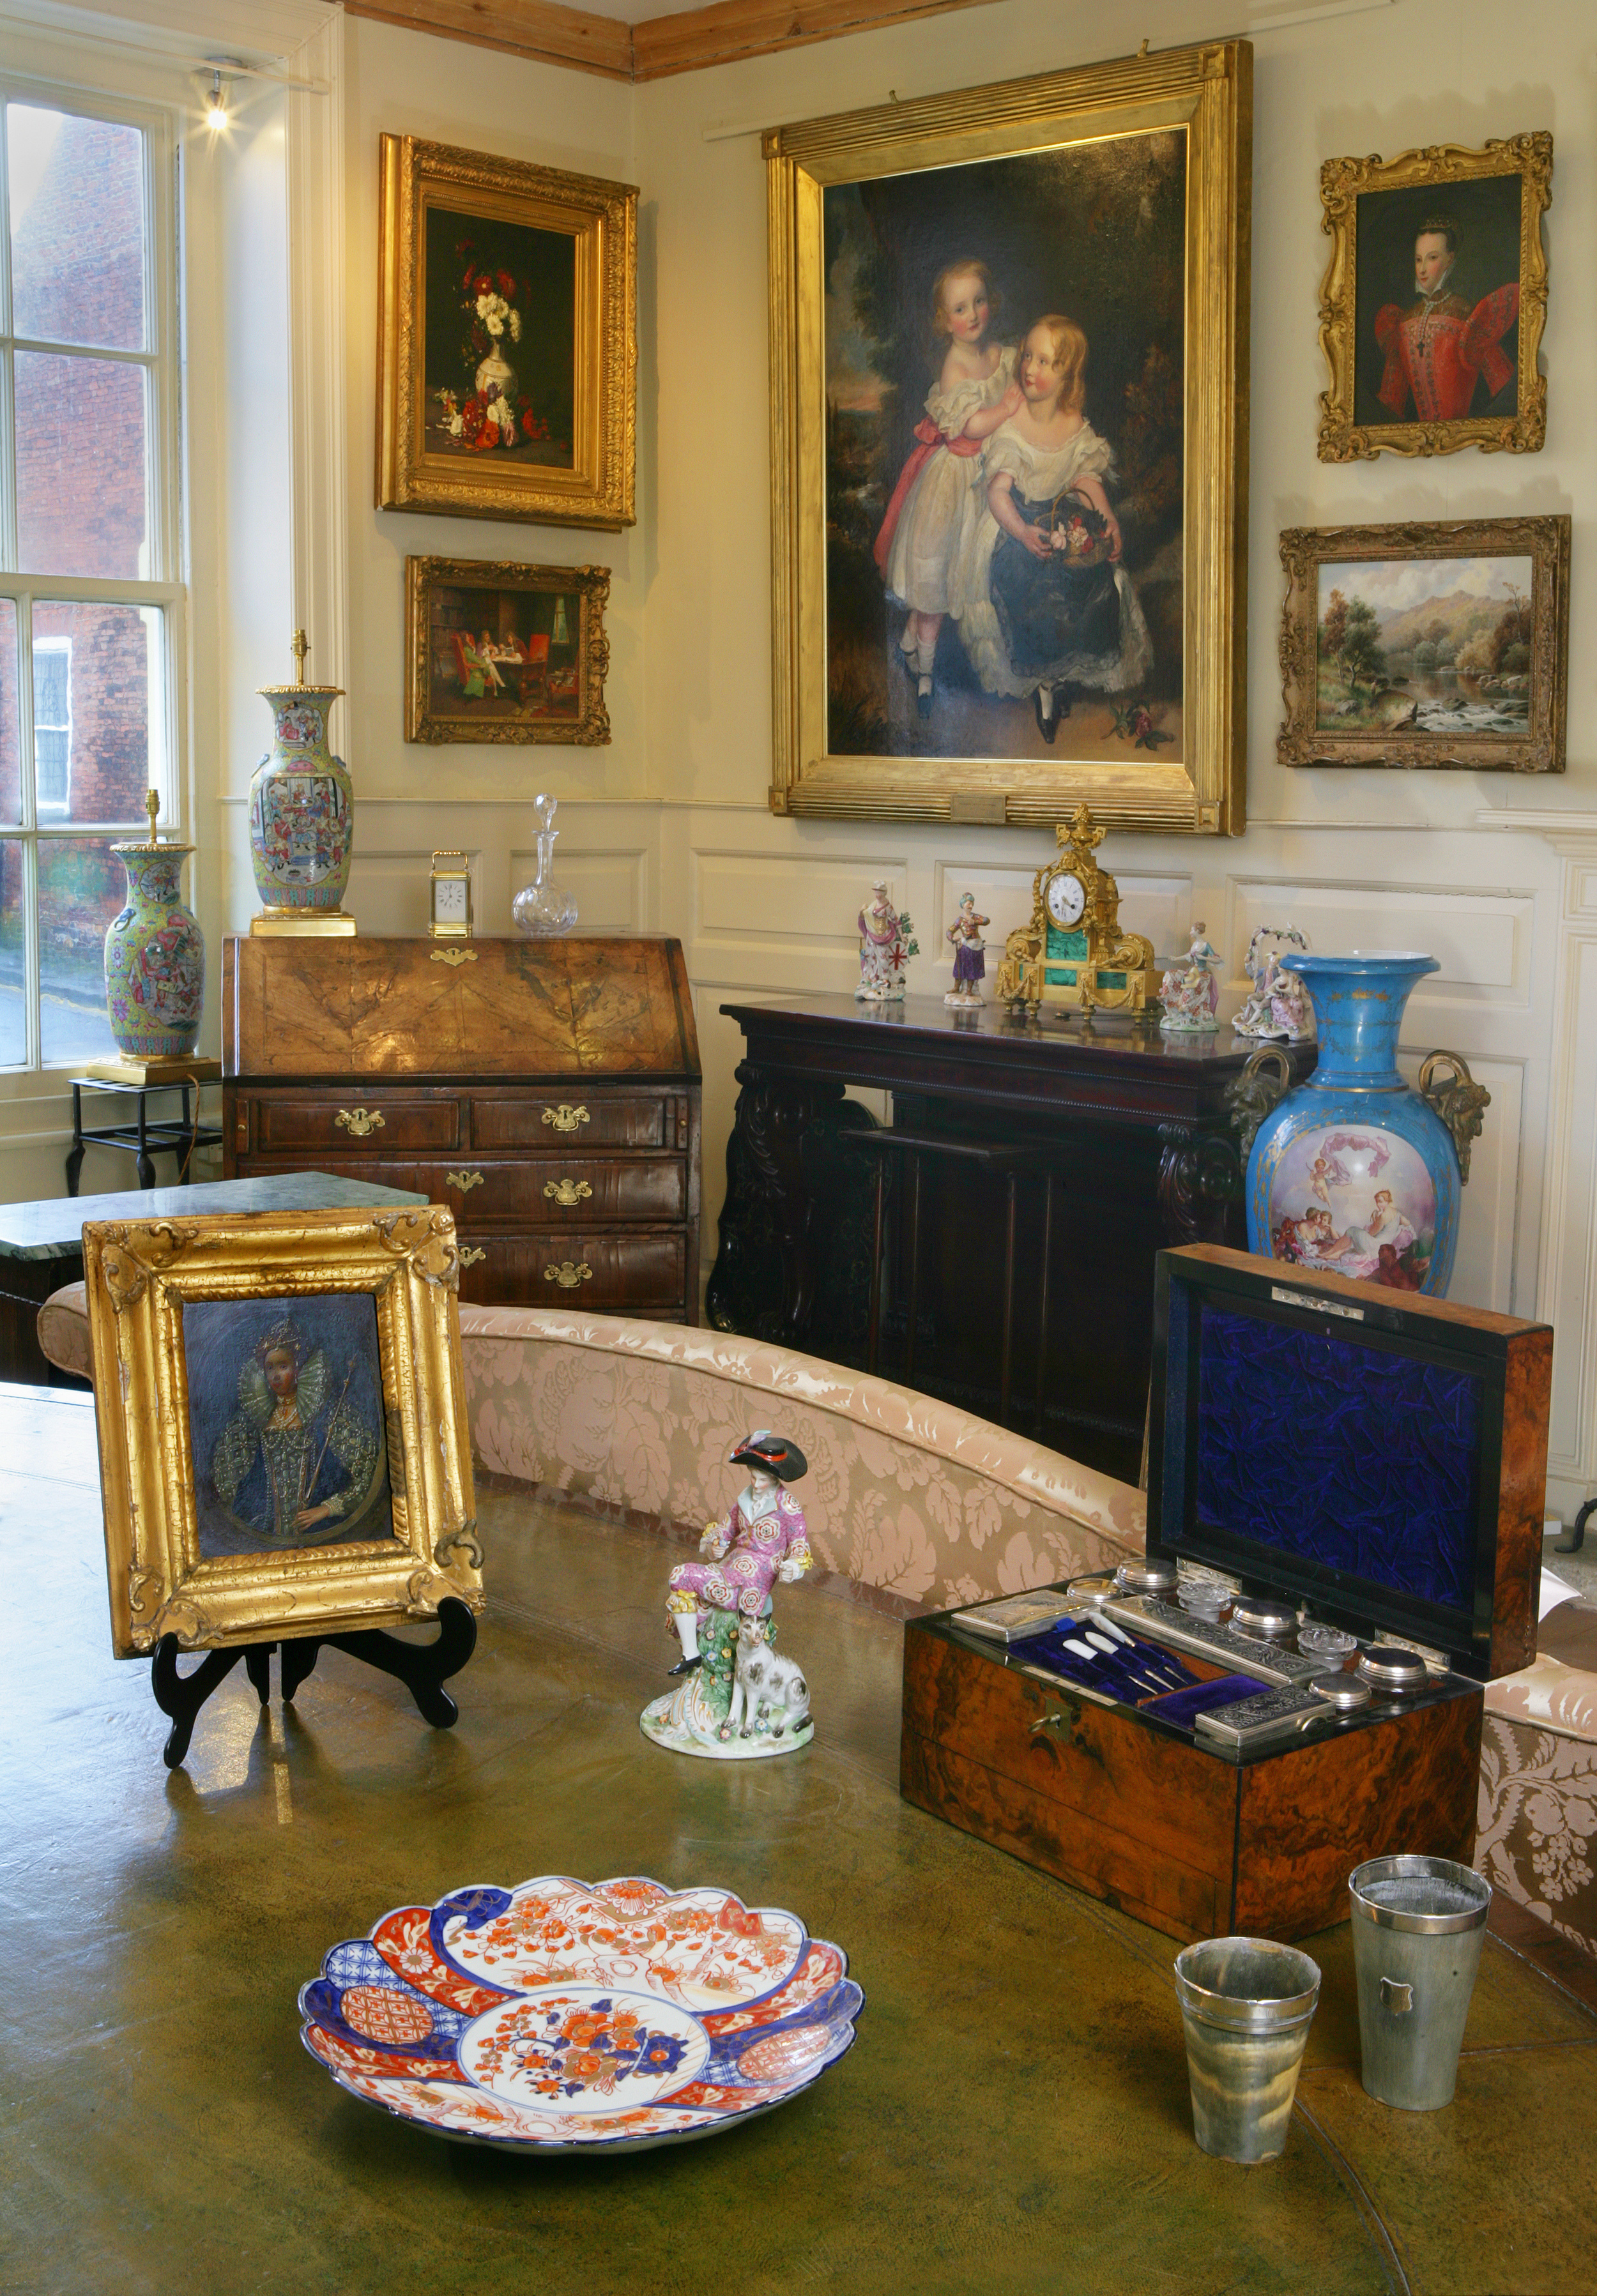 Illustrating a traditional interior, full of very fine antiques and paintings.